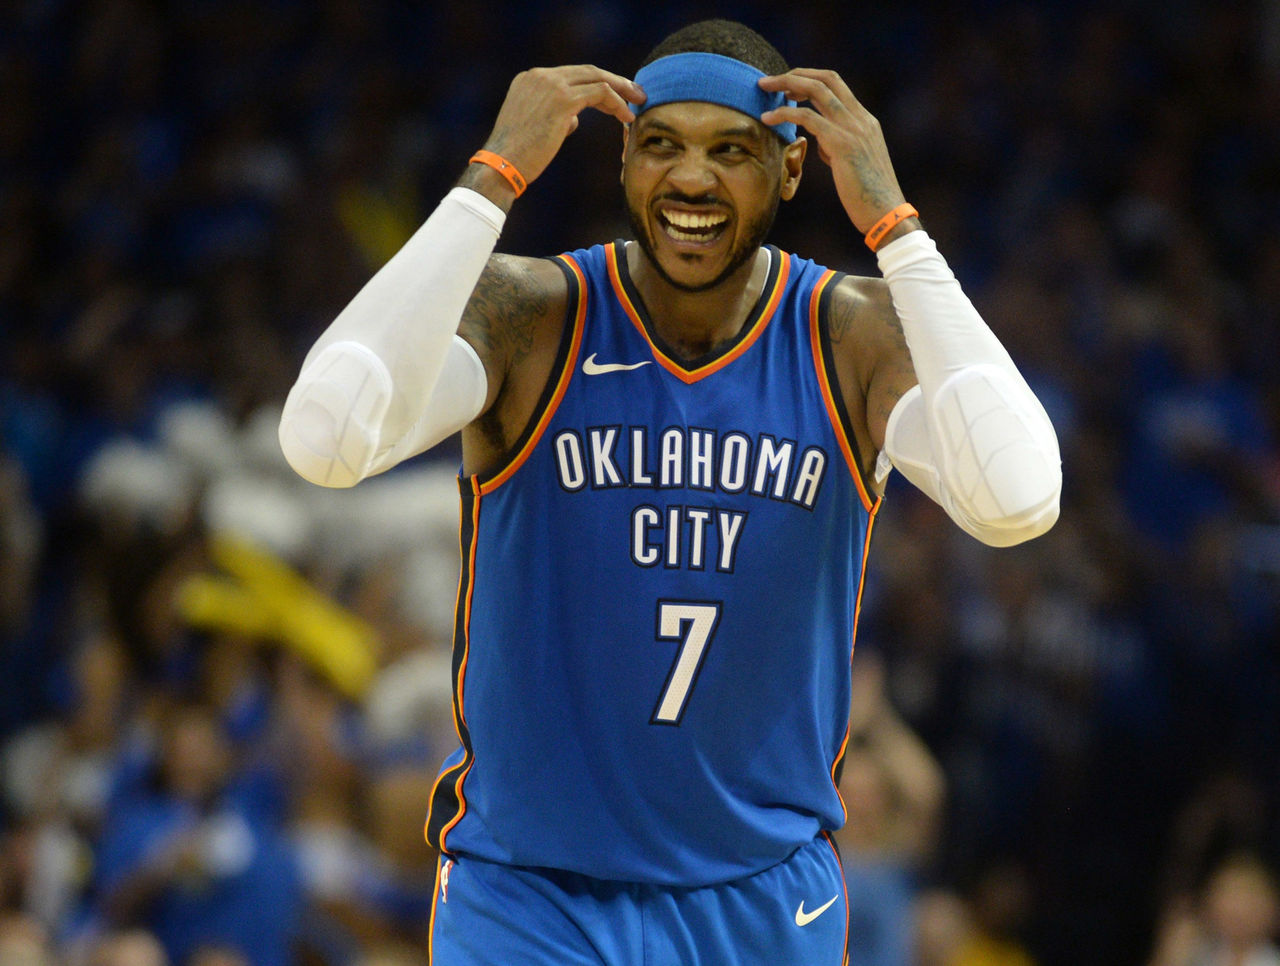 Cropped 2017 10 20t030444z 10214088 nocid rtrmadp 3 nba new york knicks at oklahoma city thunder